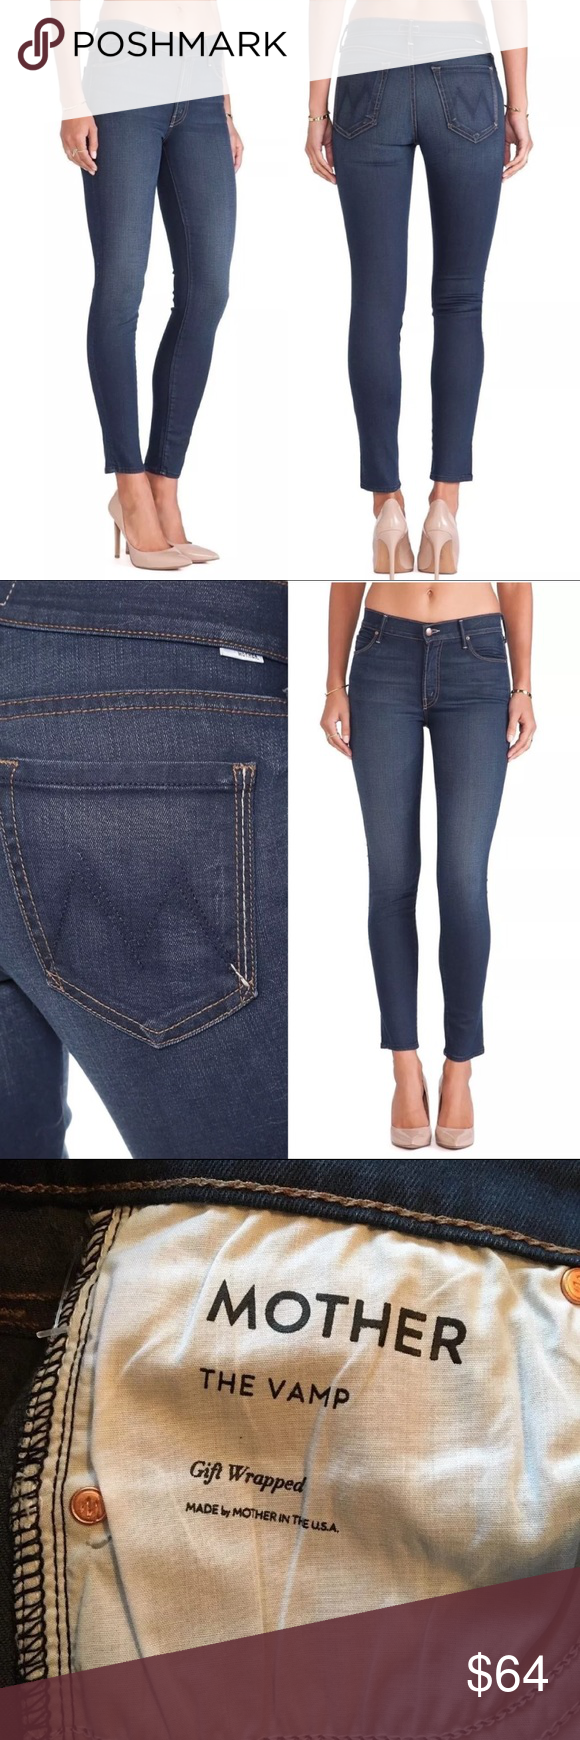 4193da31ddc New MOTHER The Vamp Skinny Ankle Slit Jeans 124235 New with tags. MOTHER  The Vamp